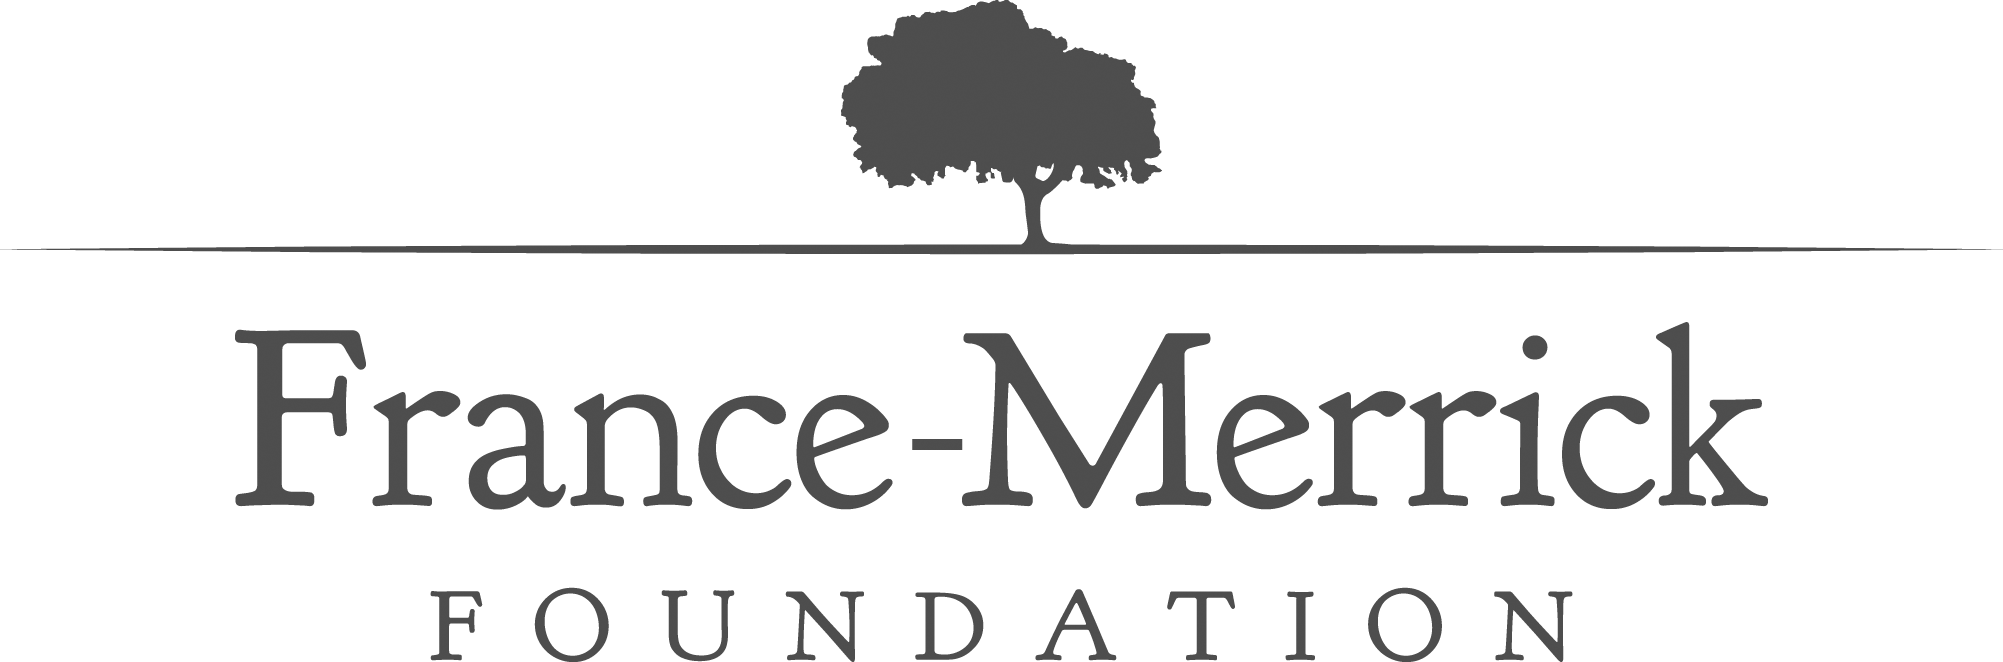 France-Merrick-Foundation1